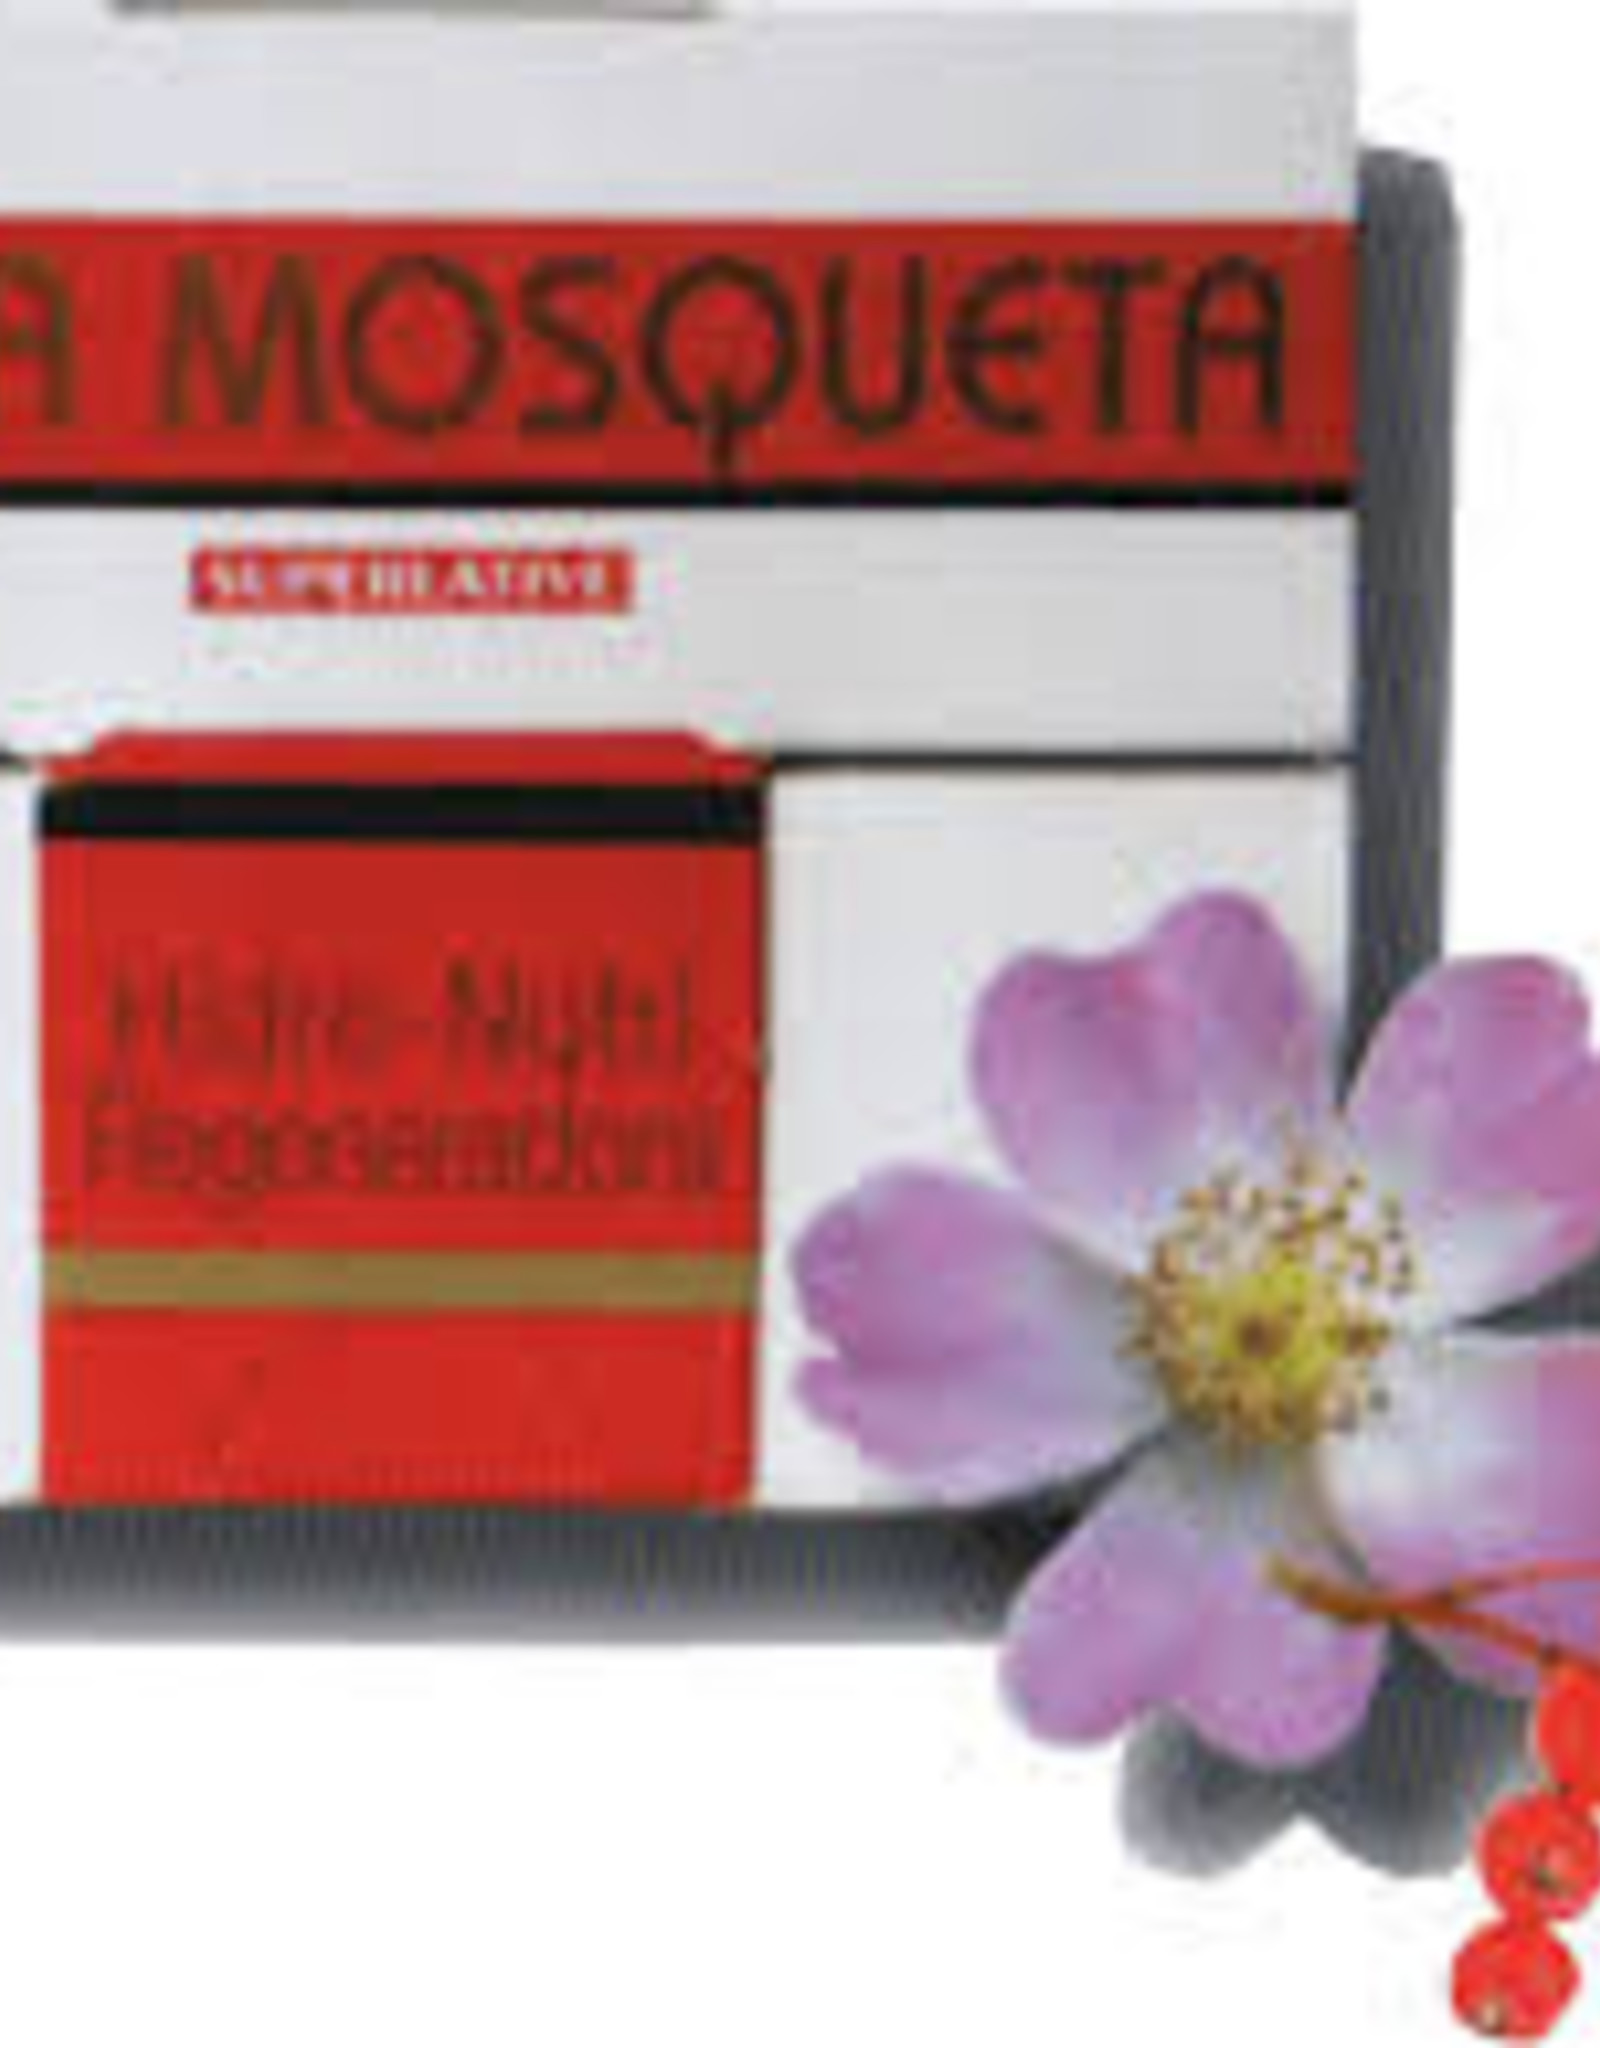 Utsukusy Rosa Mosqueta cream 50ml